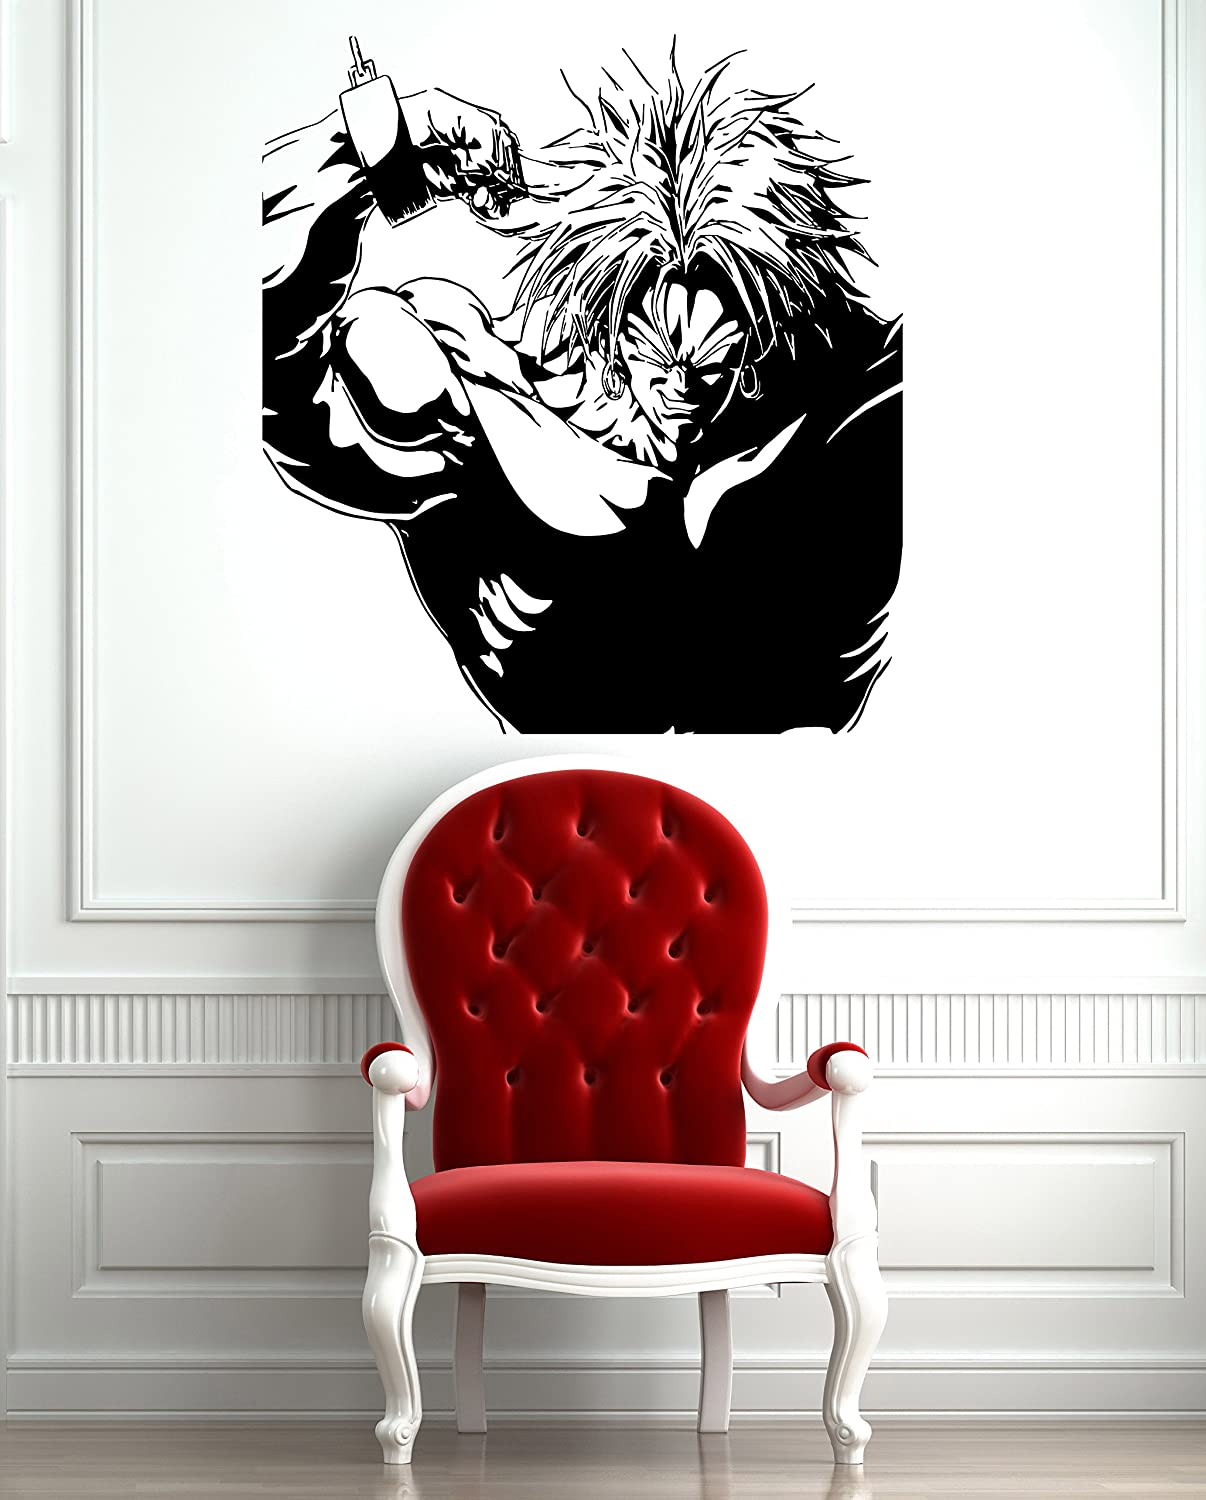 Amazon chained broly dragon ball z anime decor wall mural amazon chained broly dragon ball z anime decor wall mural vinyl decal sticker p393 home kitchen amipublicfo Images